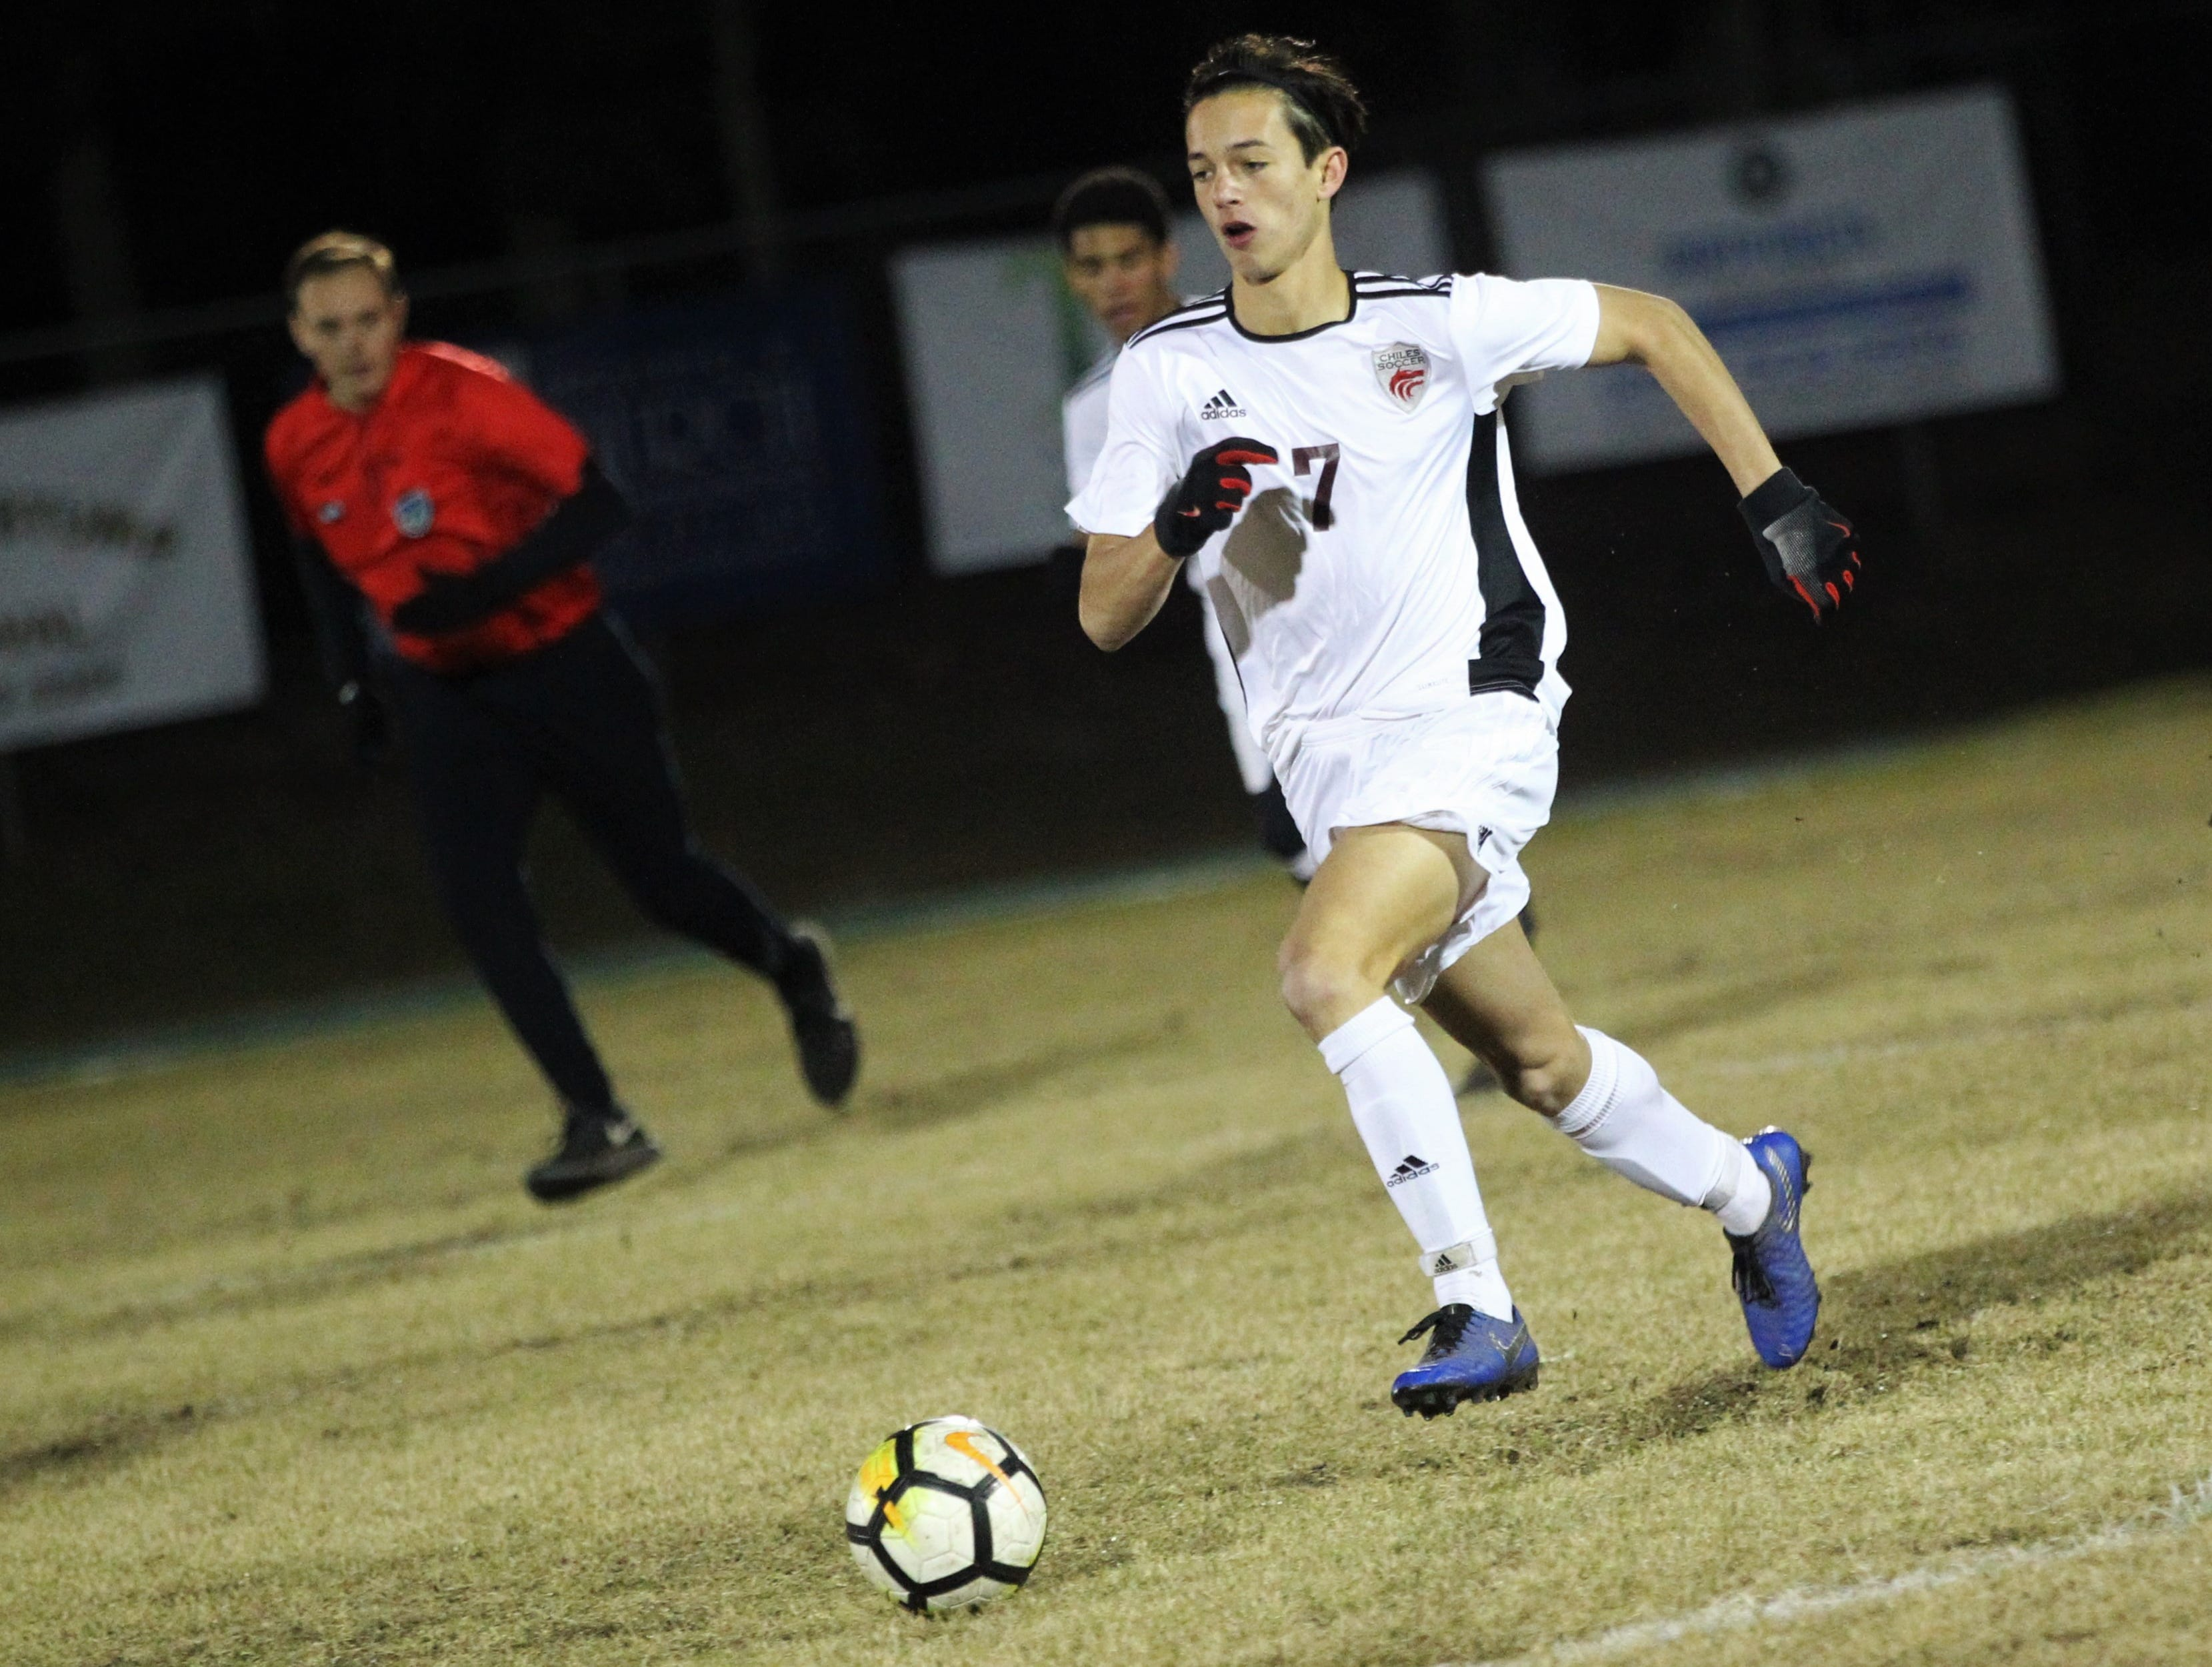 Chiles midfielder Logan Thompson dribbles upfield as Chiles' boys soccer team beat Lincoln 1-0 in a District 2-4A semifinal on Jan. 30, 2019.